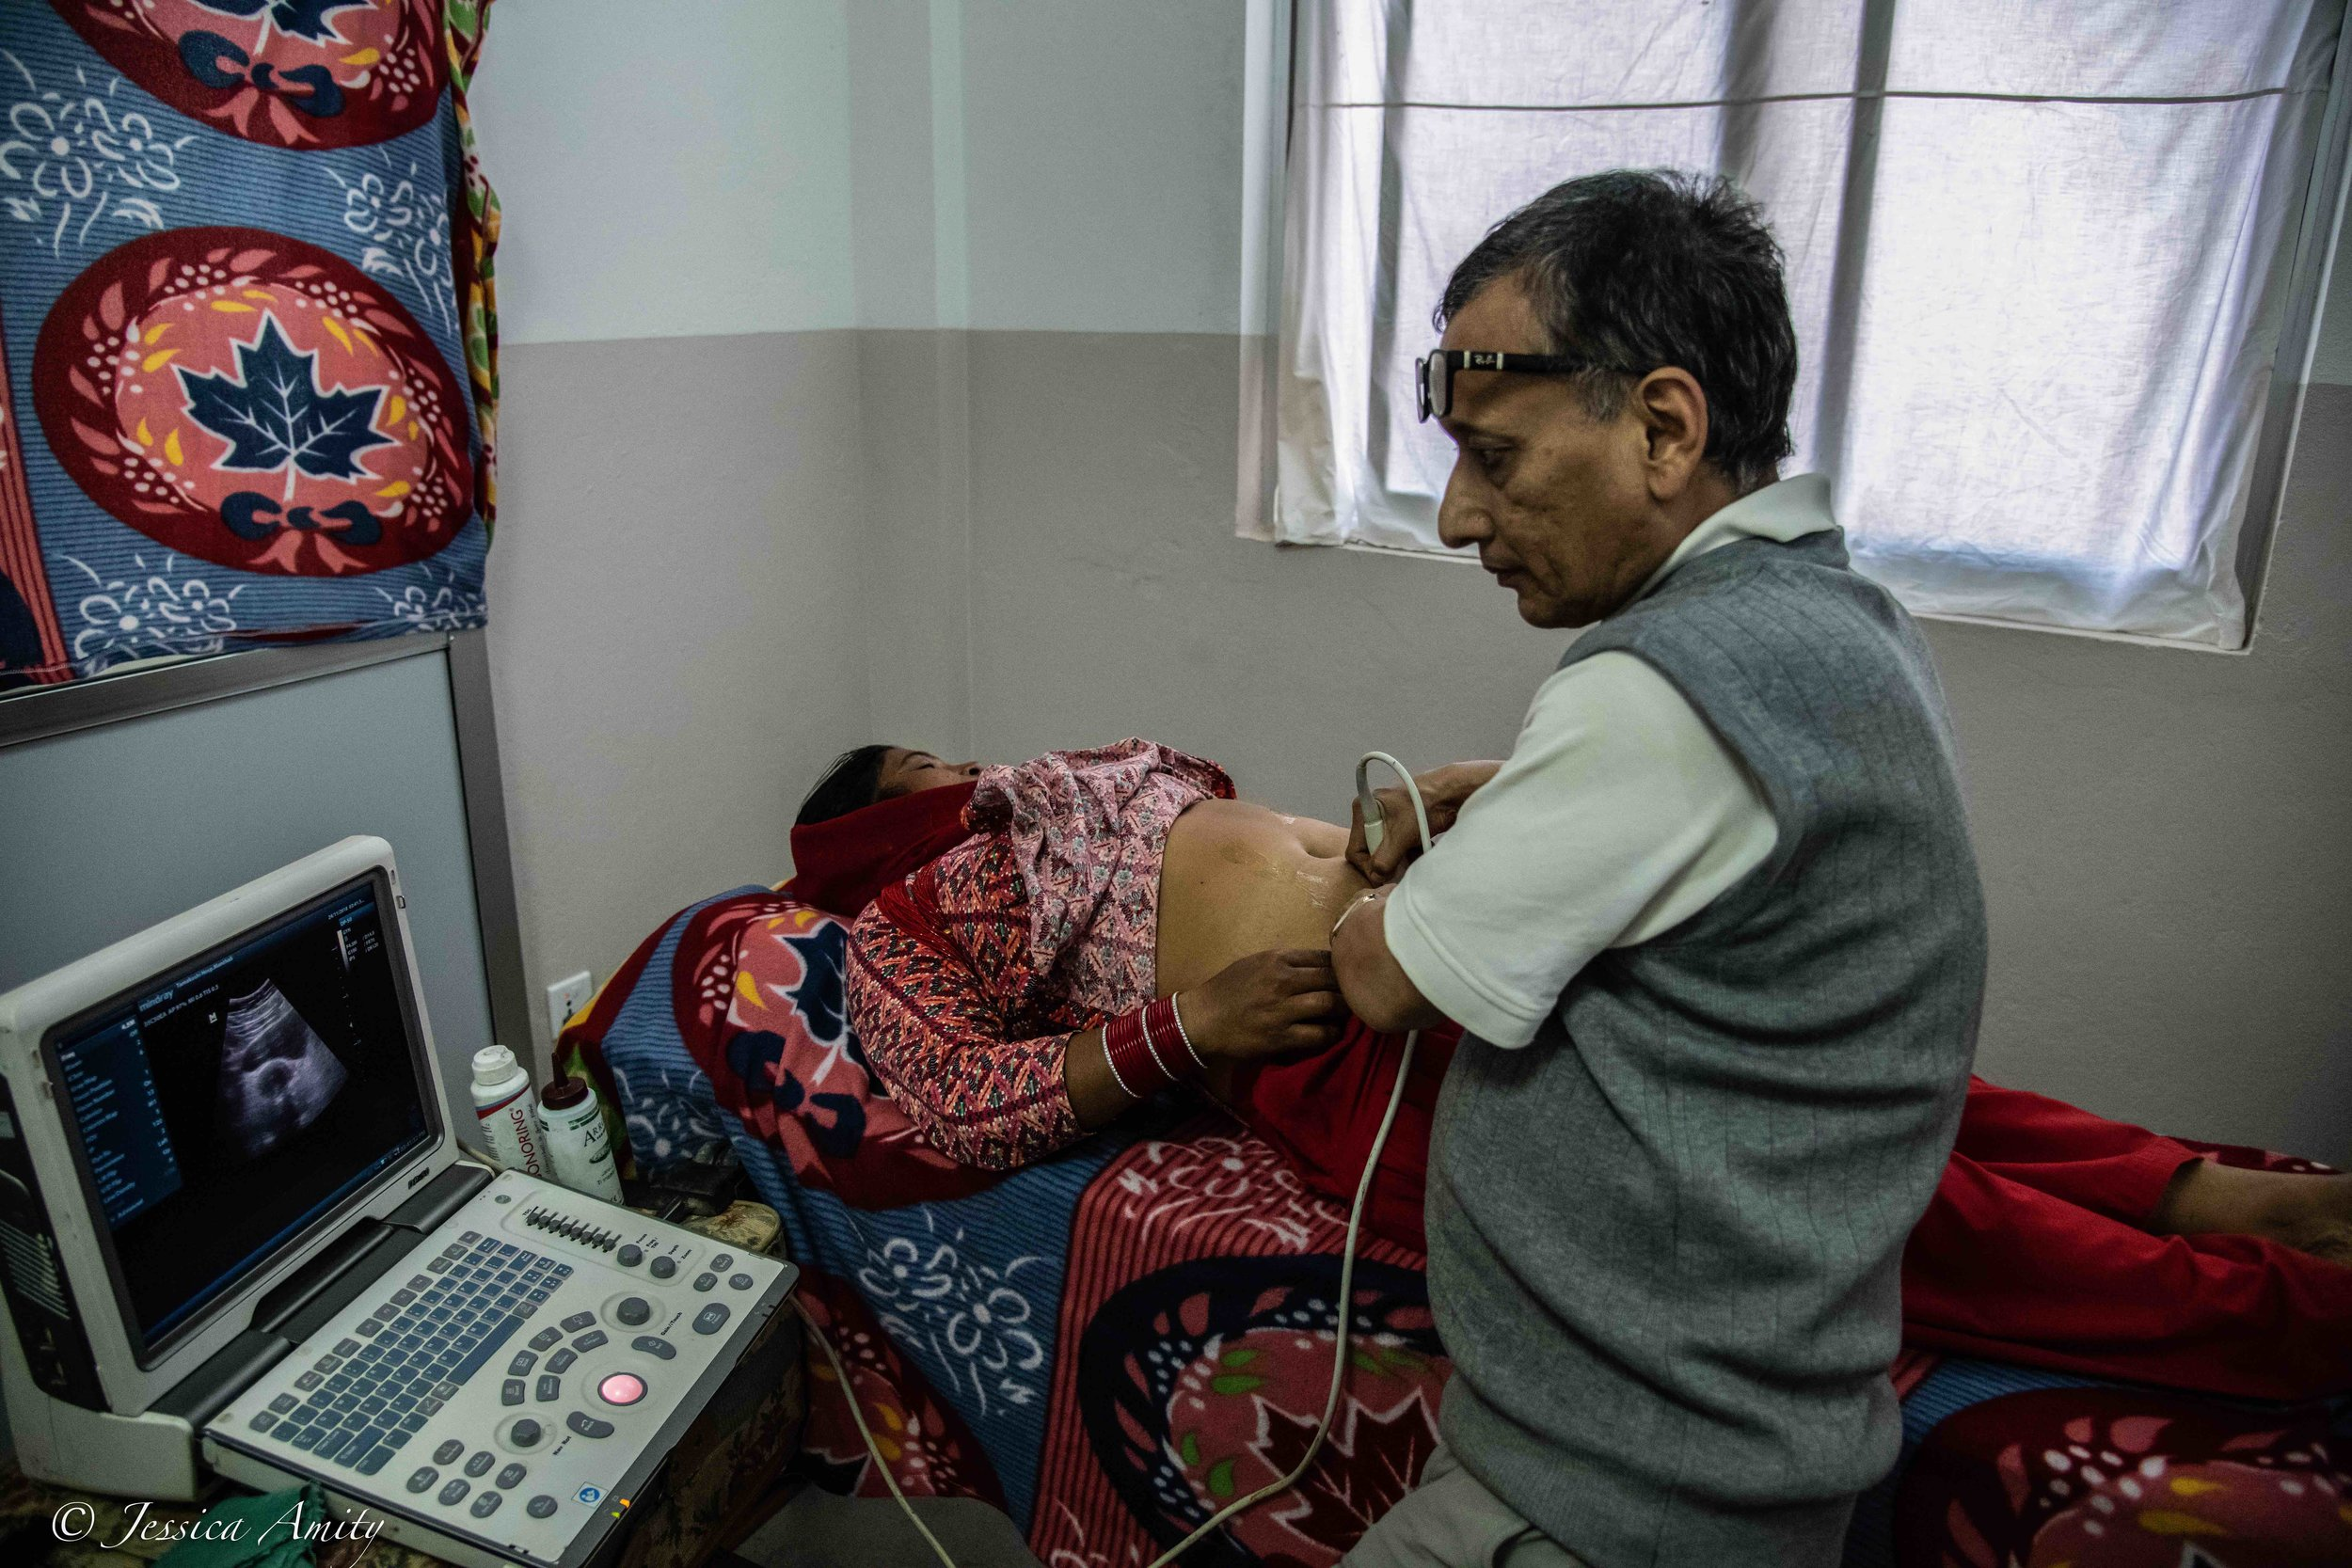 Dr. Suman gives a woman an ultrasound and discovers she has a tumour on her uterus. It would require her to visit a hospital and have it removed.